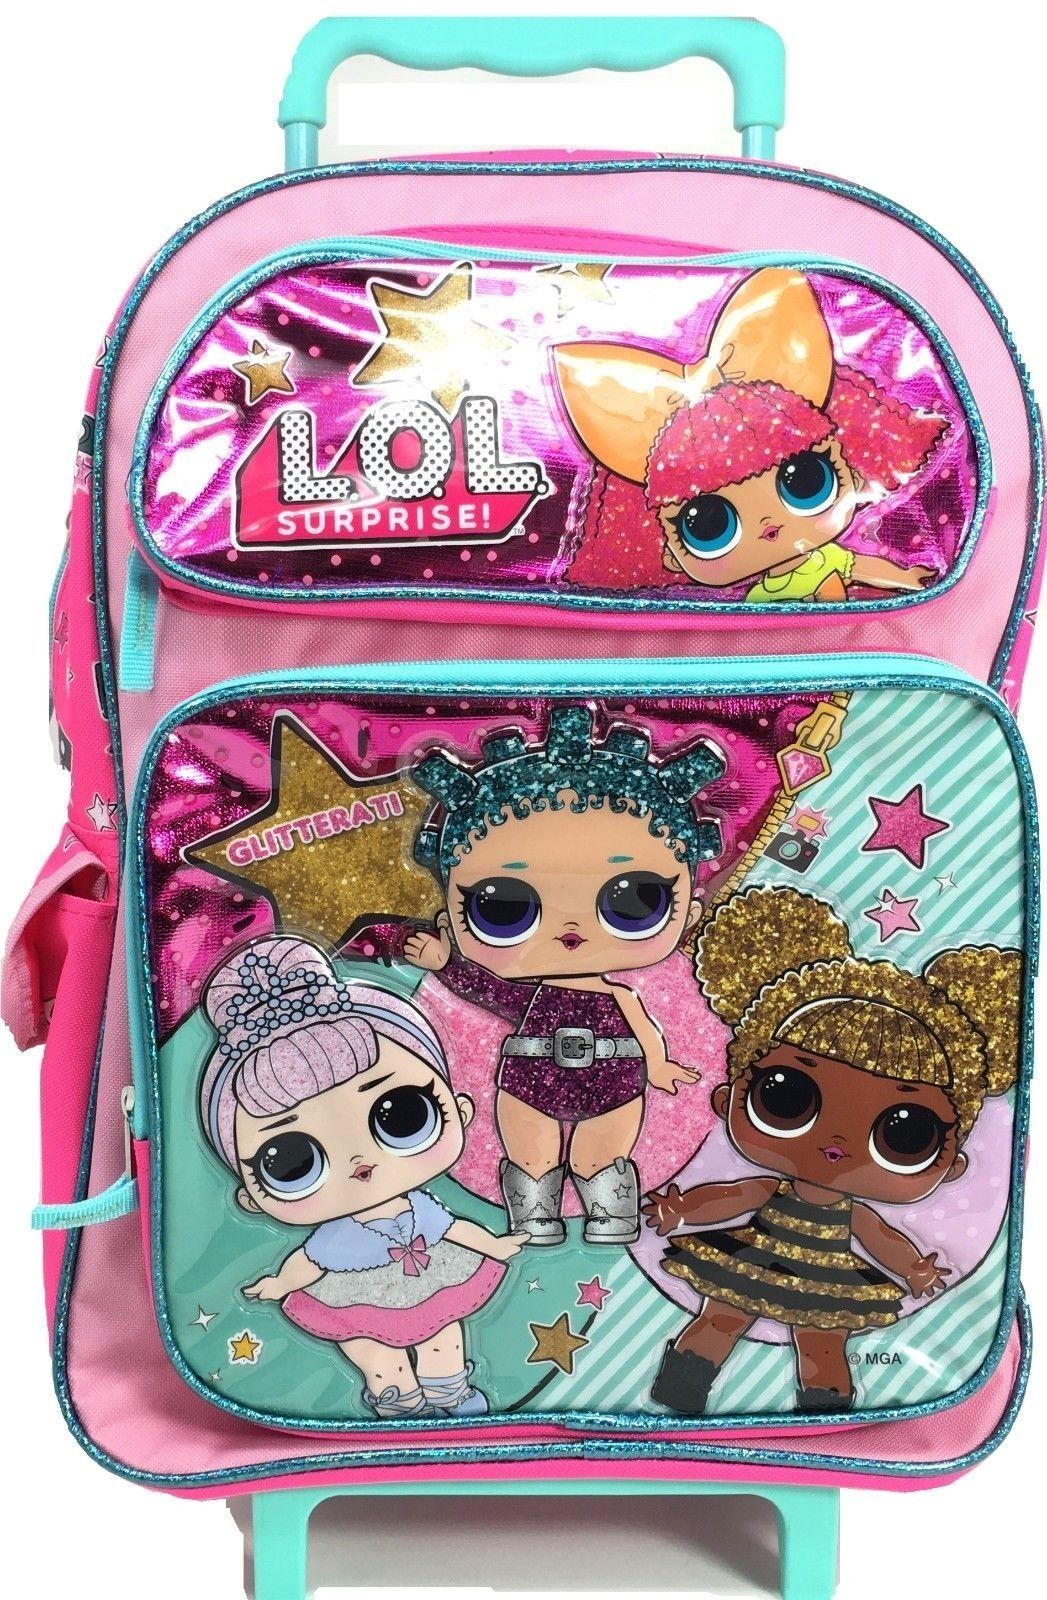 2a6cd09b4d57 L.O.L Surprise! Large School Rolling Backpack 16